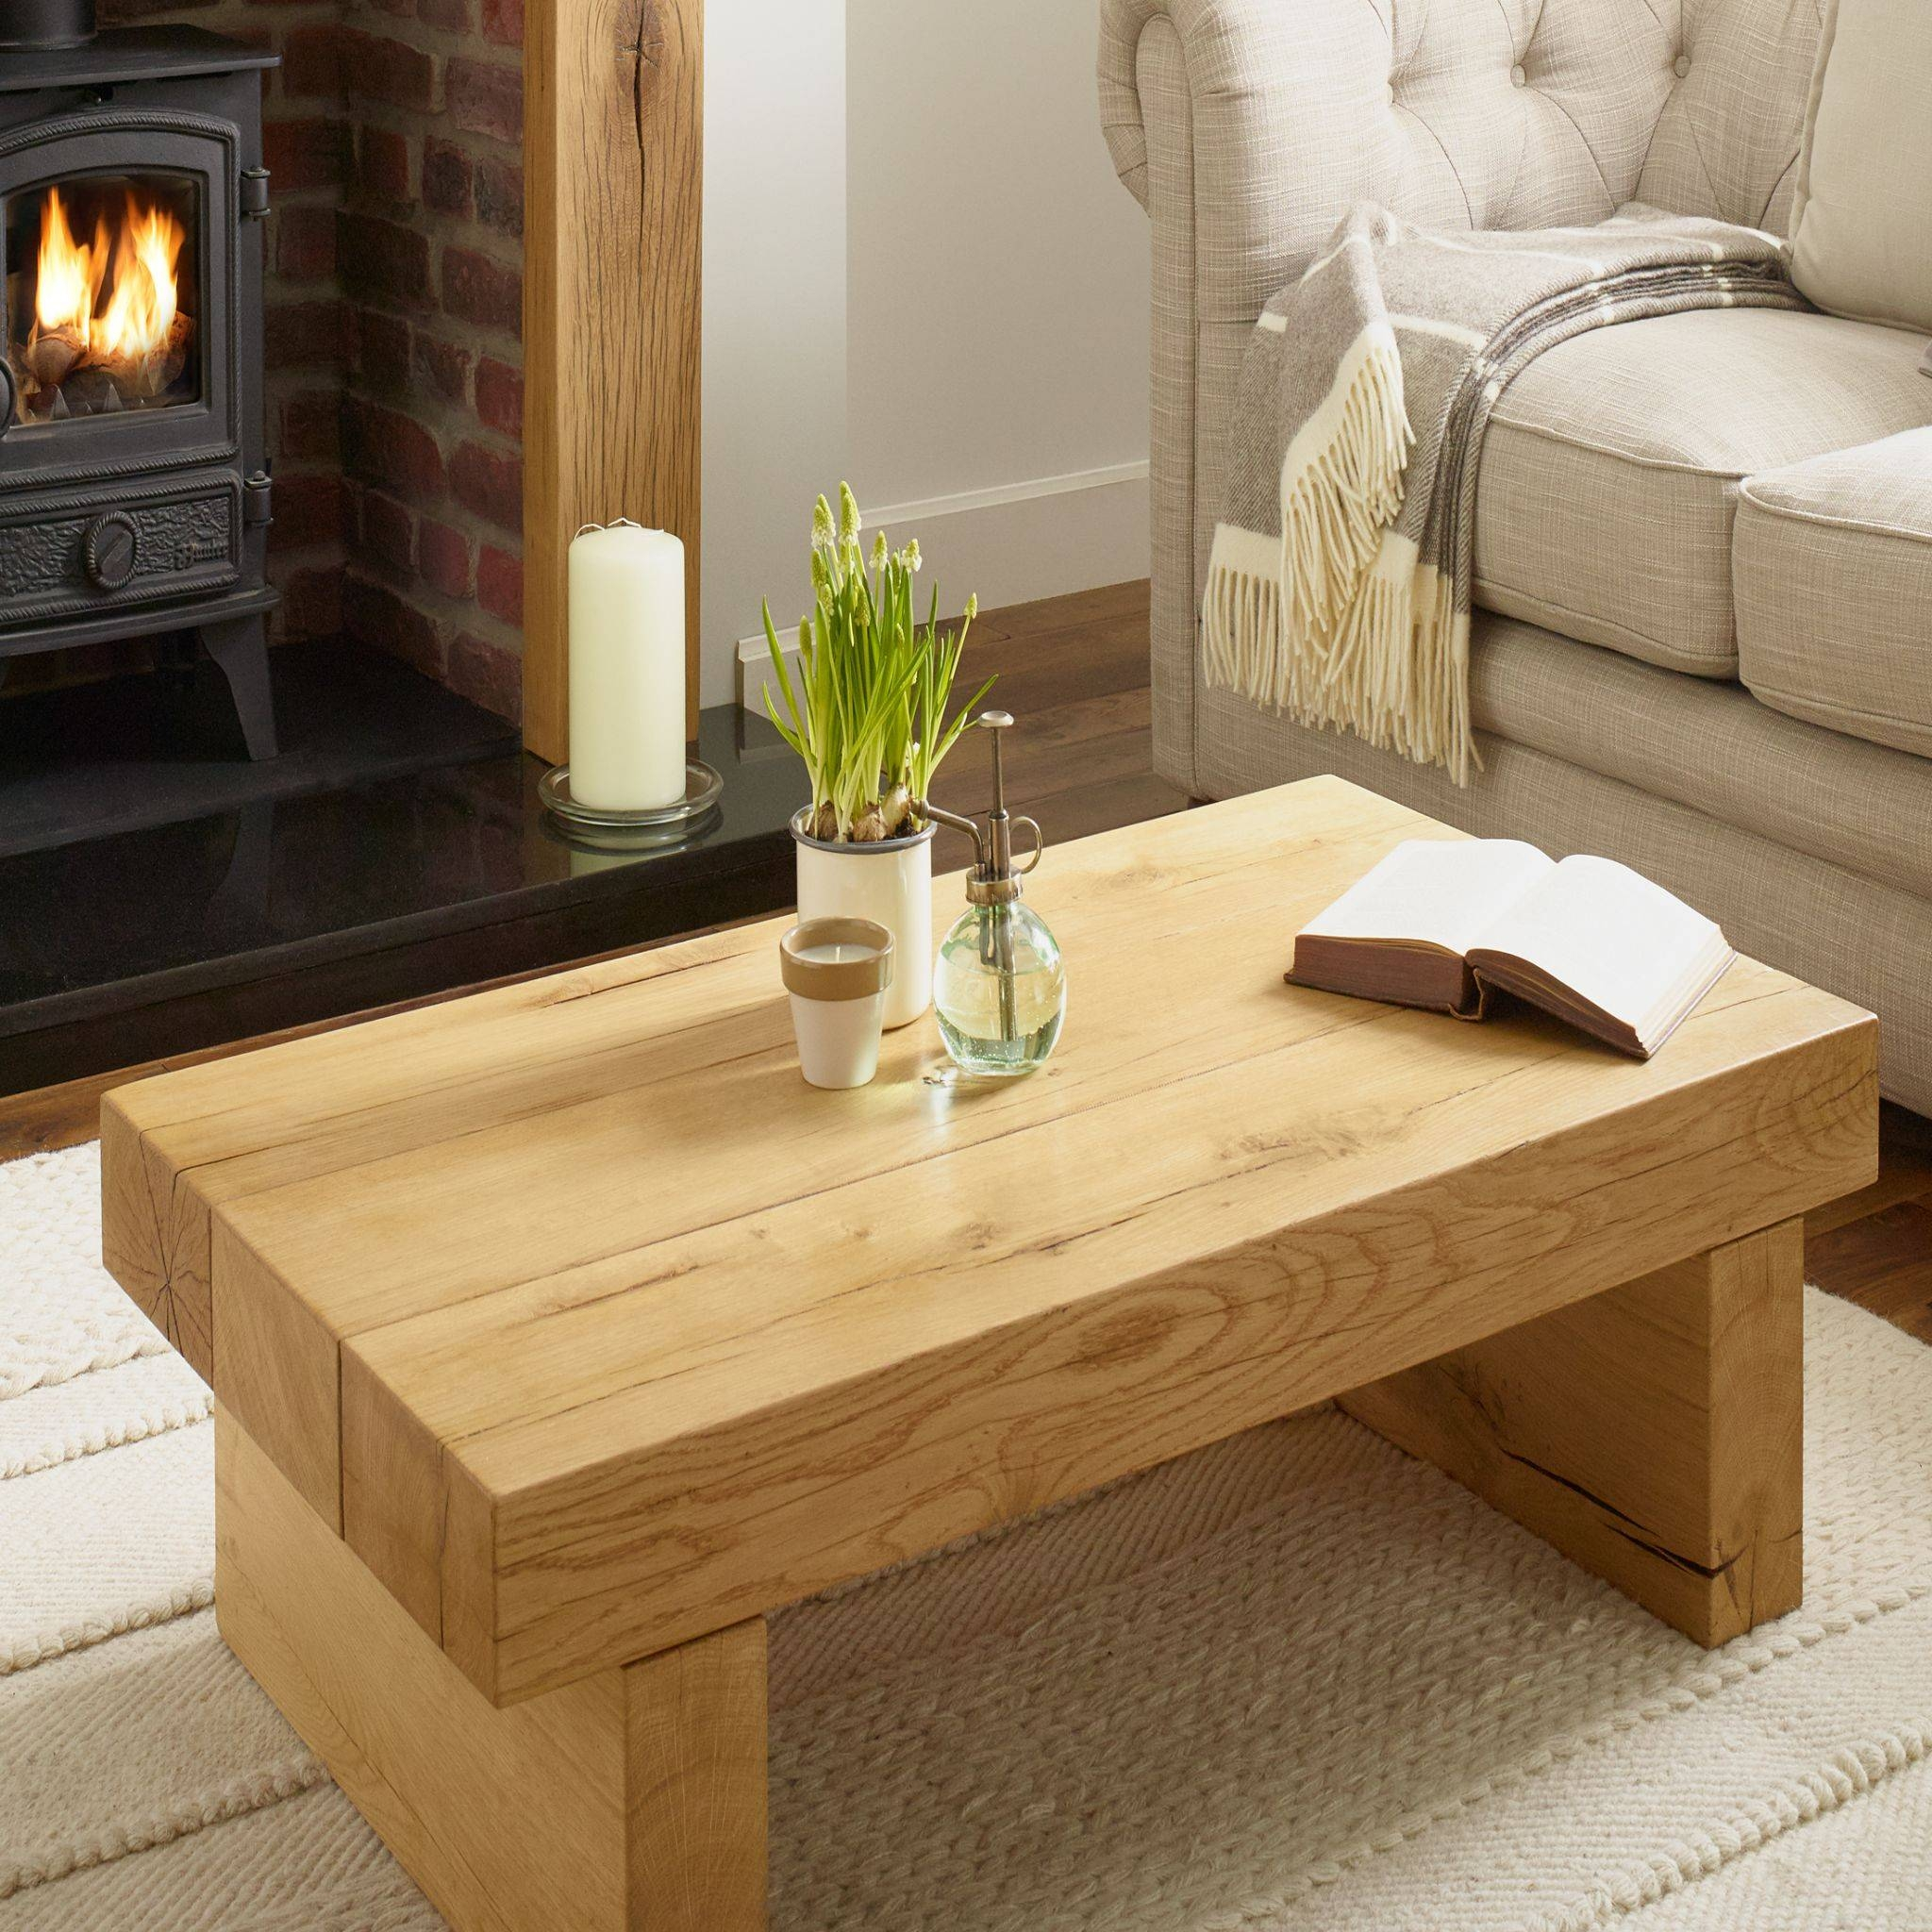 Oak Coffee Table Oxford Solid French Rustic Beam Intended For Solid Oak Beam Coffee Table (Photo 3 of 15)